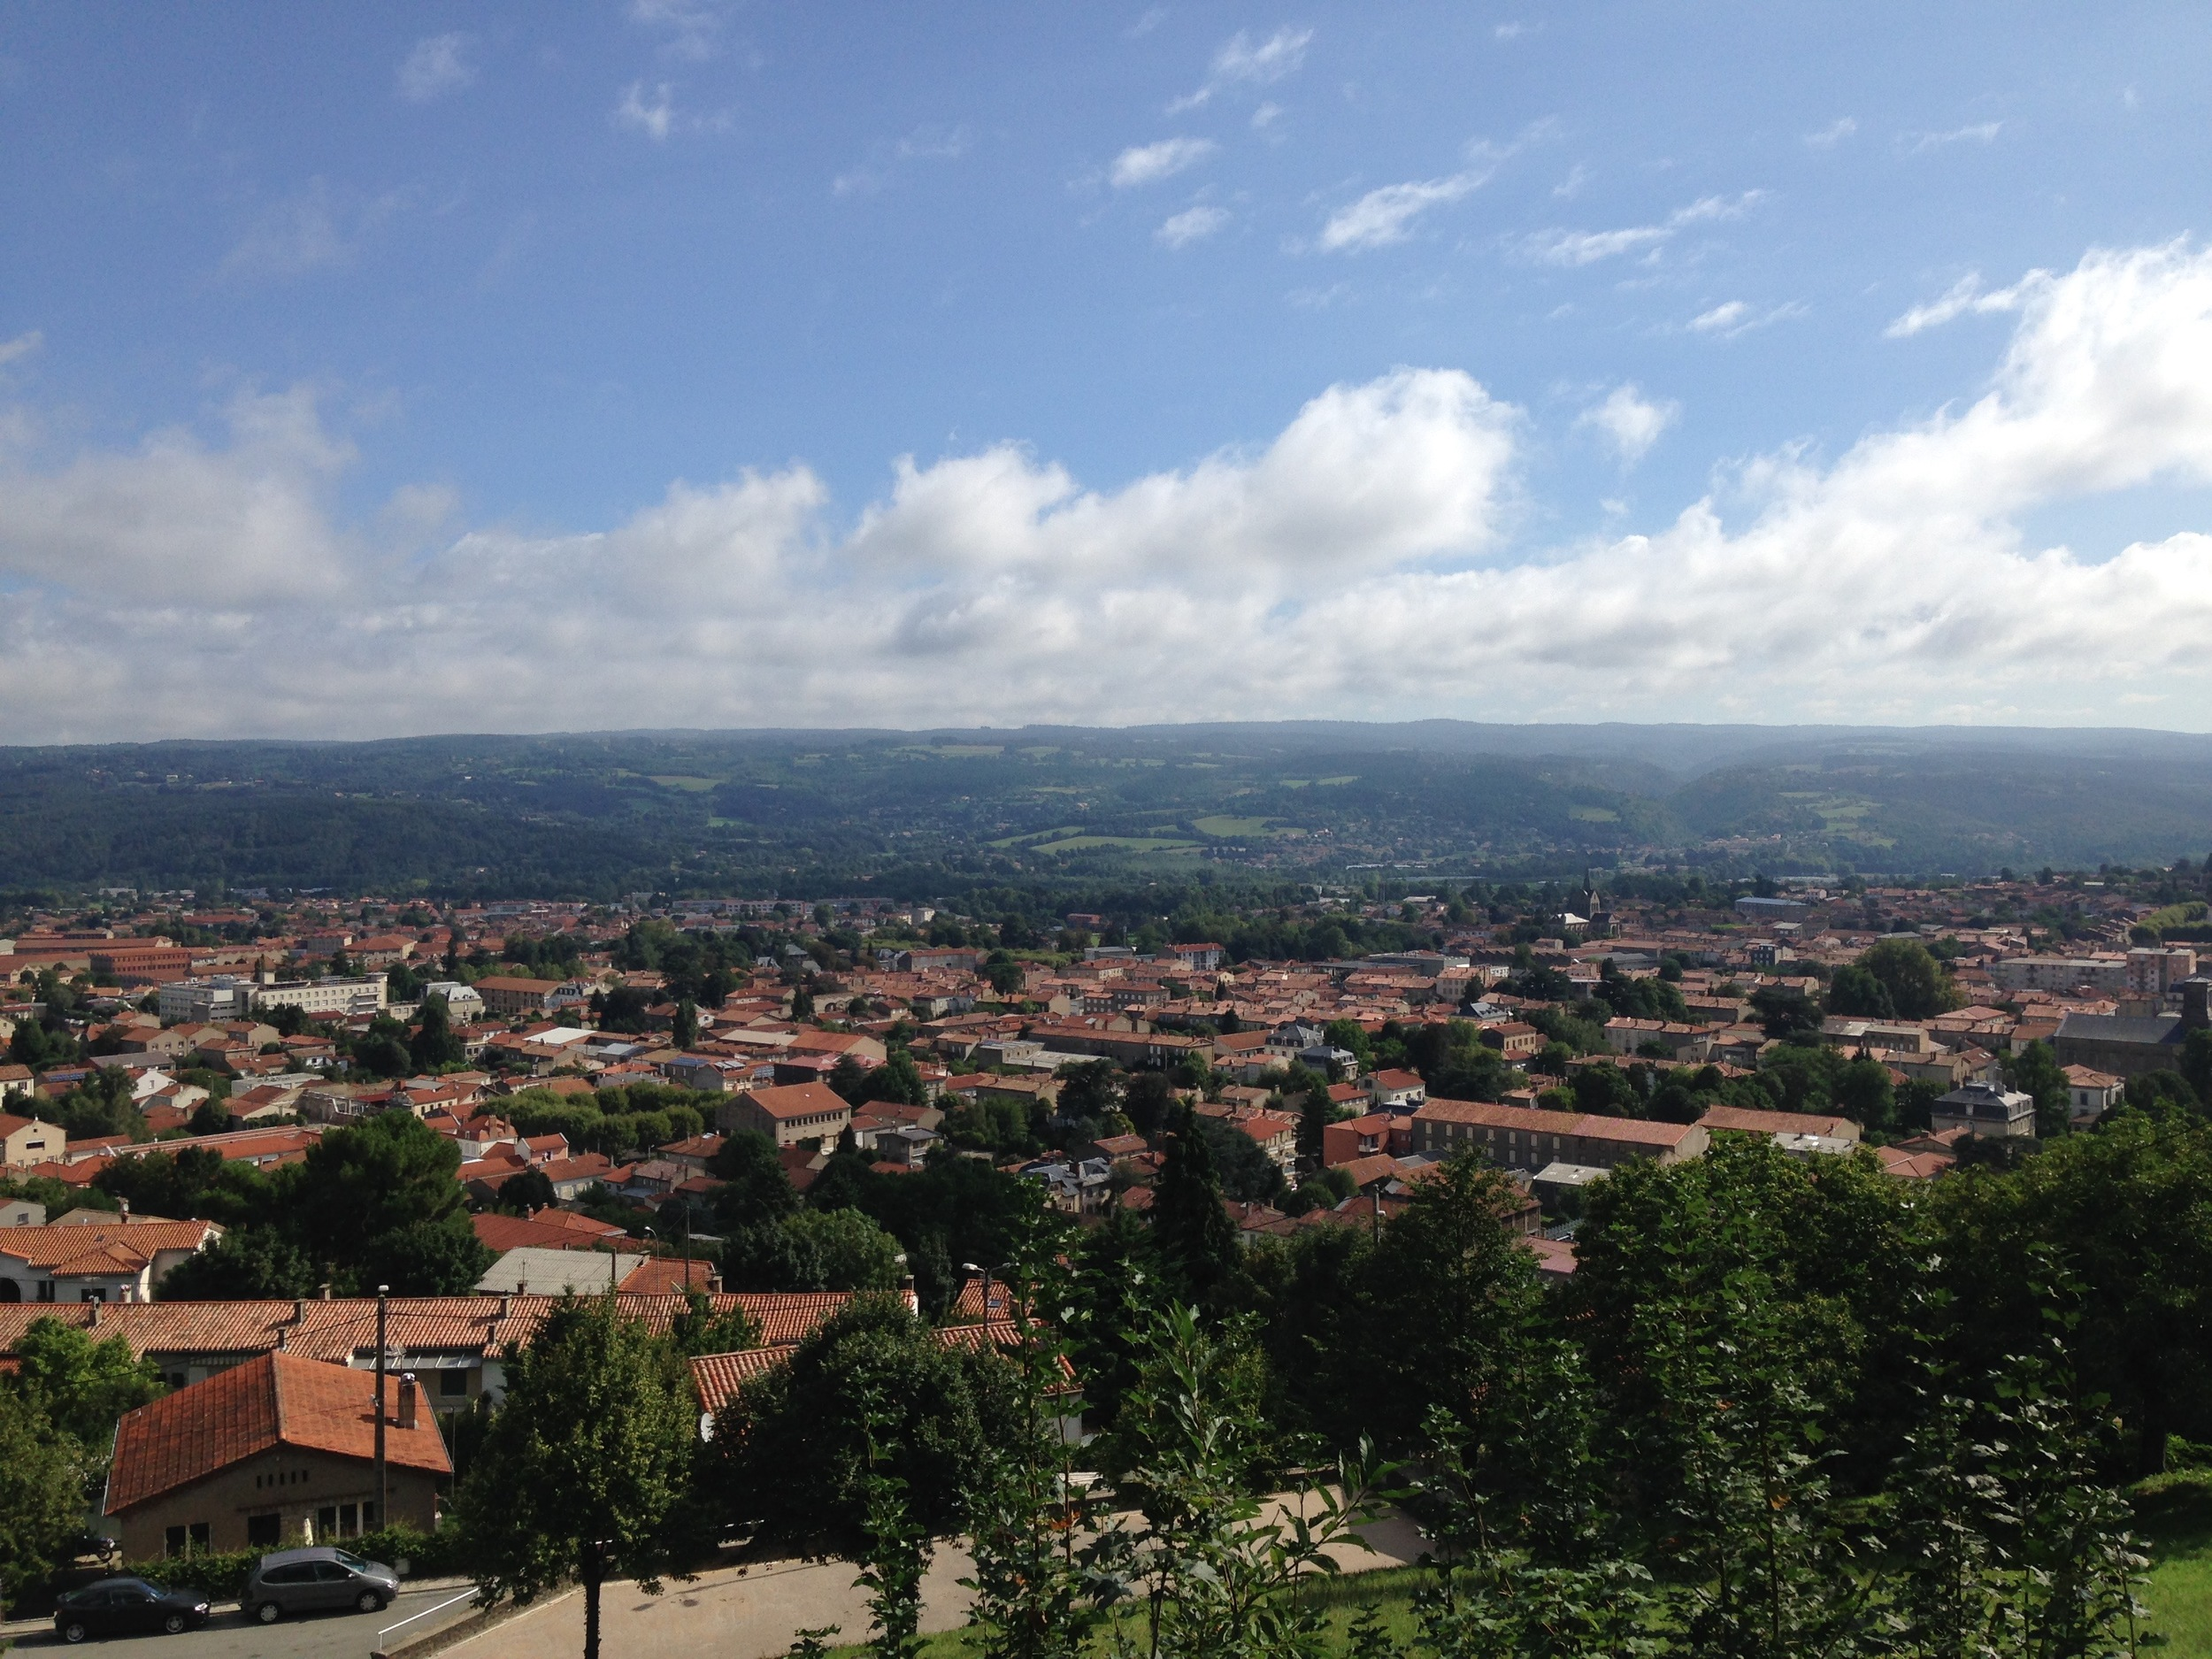 The view back to Mazamet and the distant Languedoc from the start of the climb